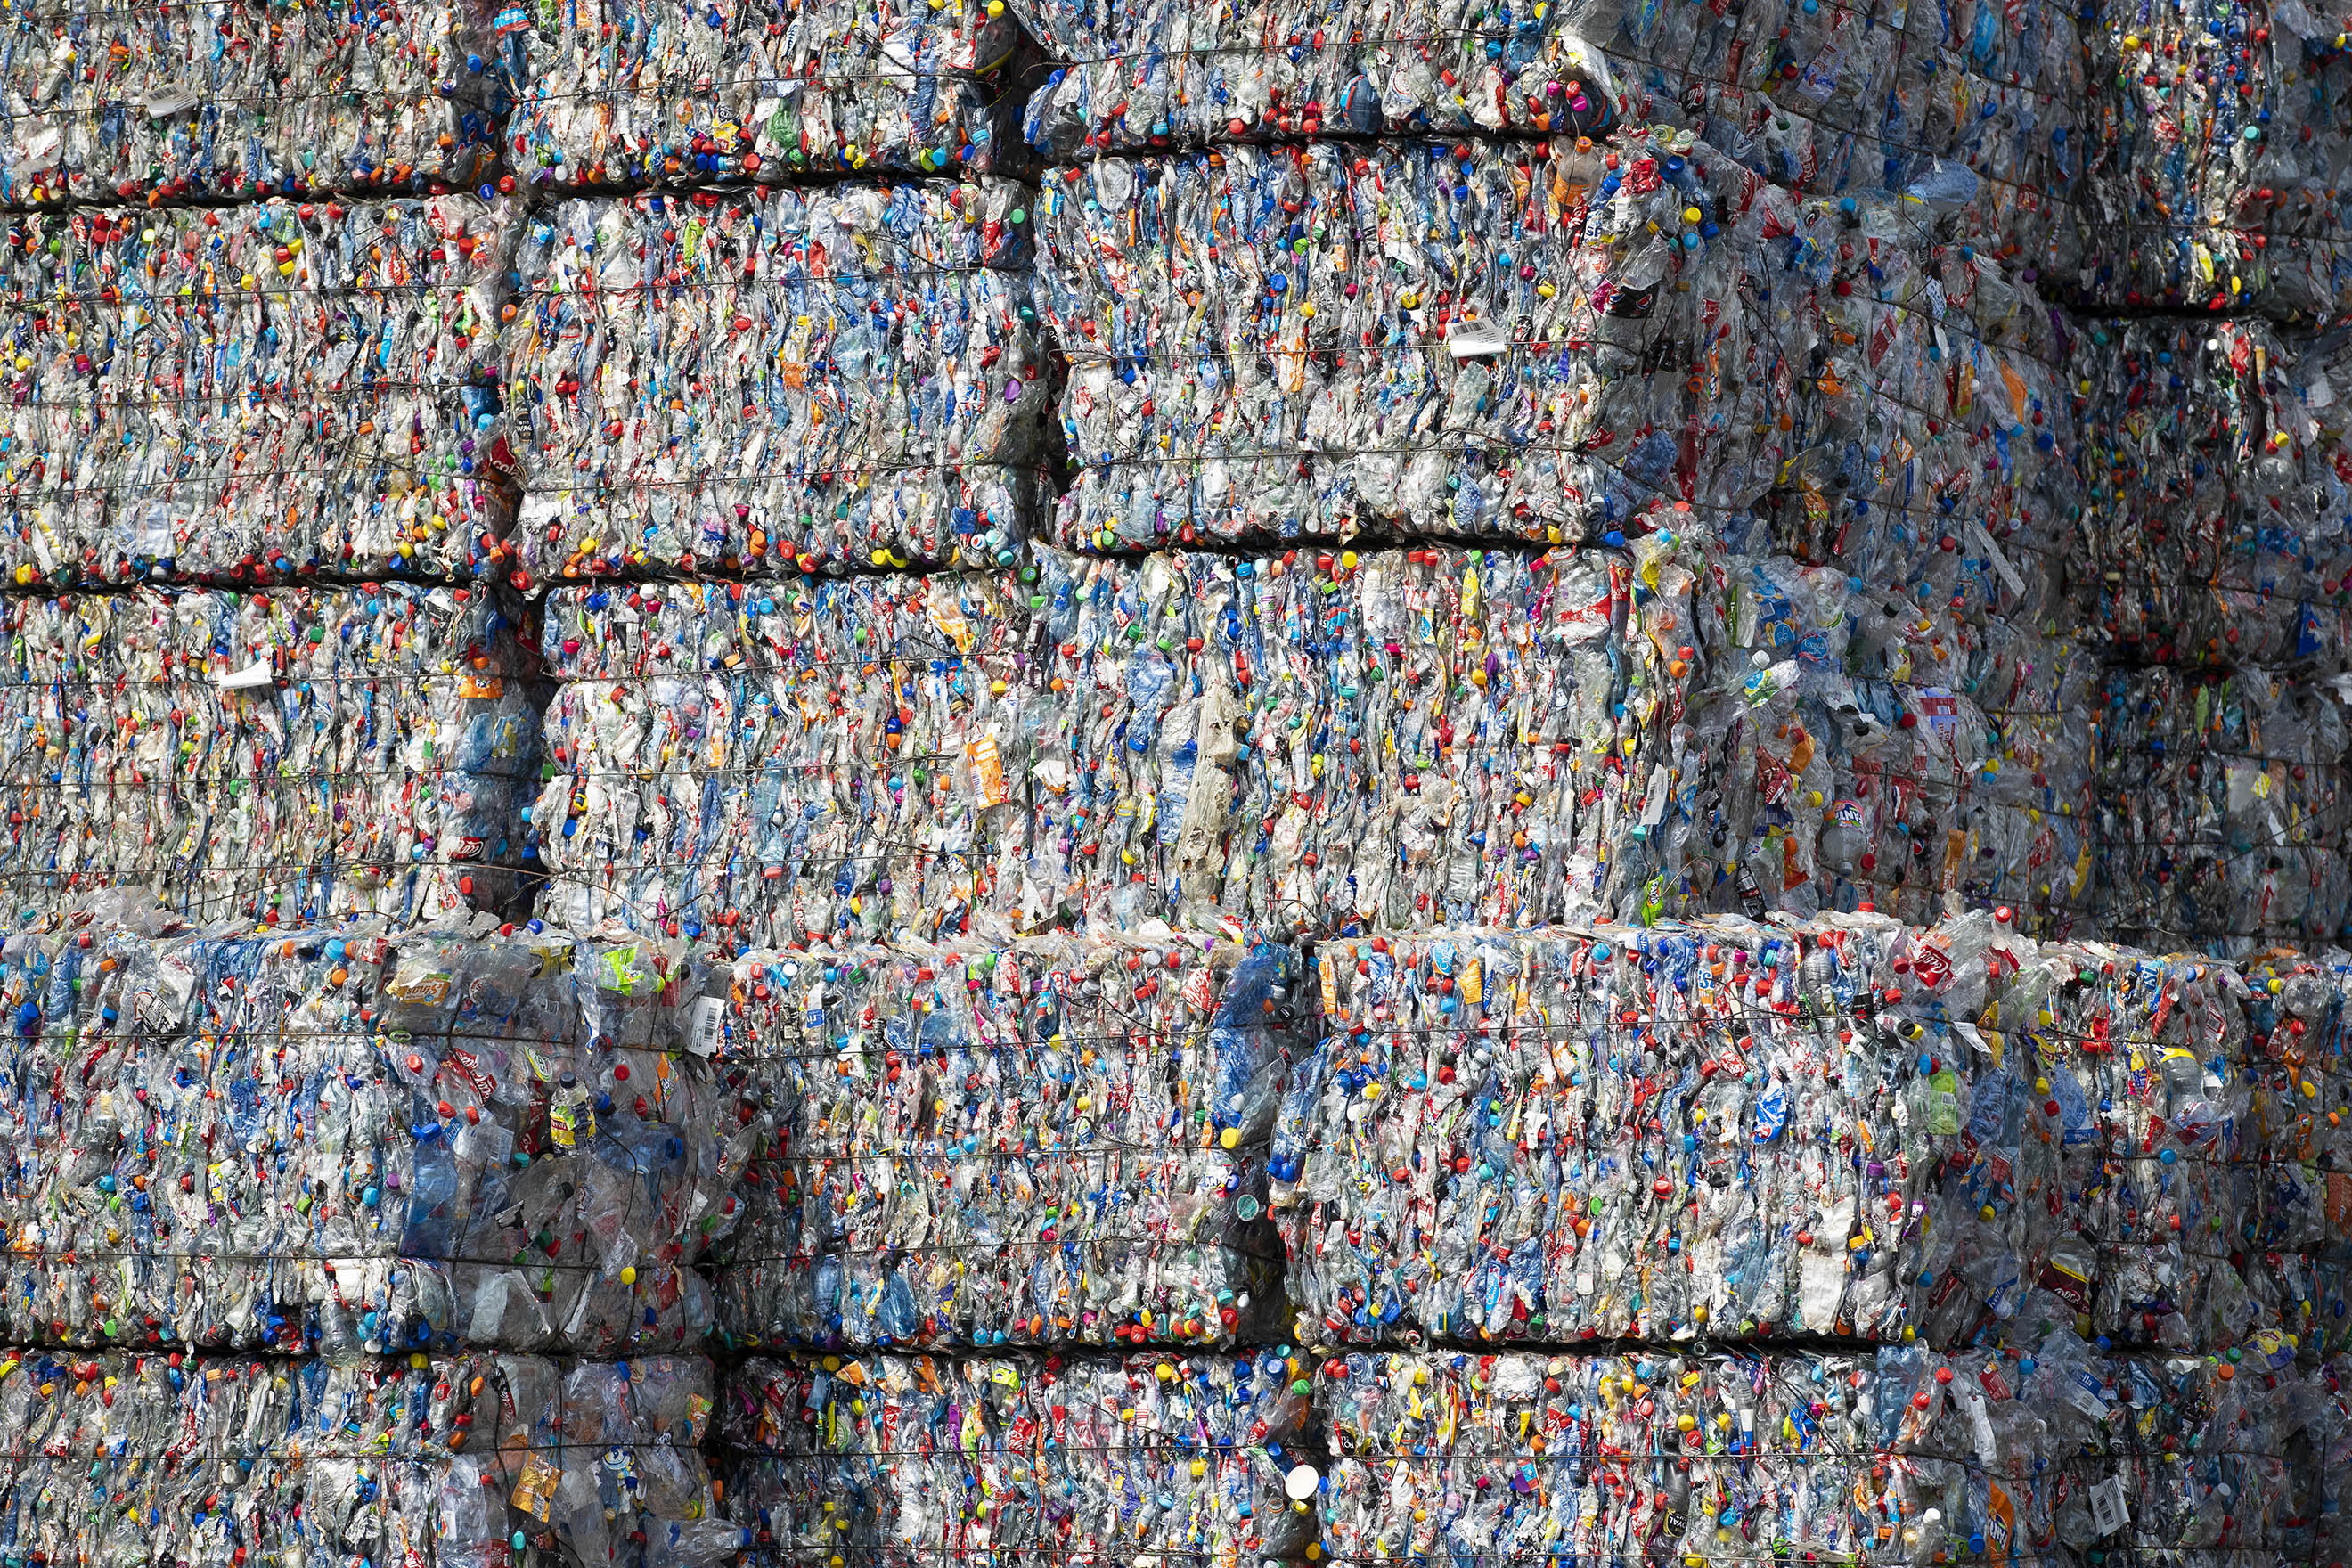 Bound bales of crushed plastic as part of developed countries exported waste waiting to be recycled